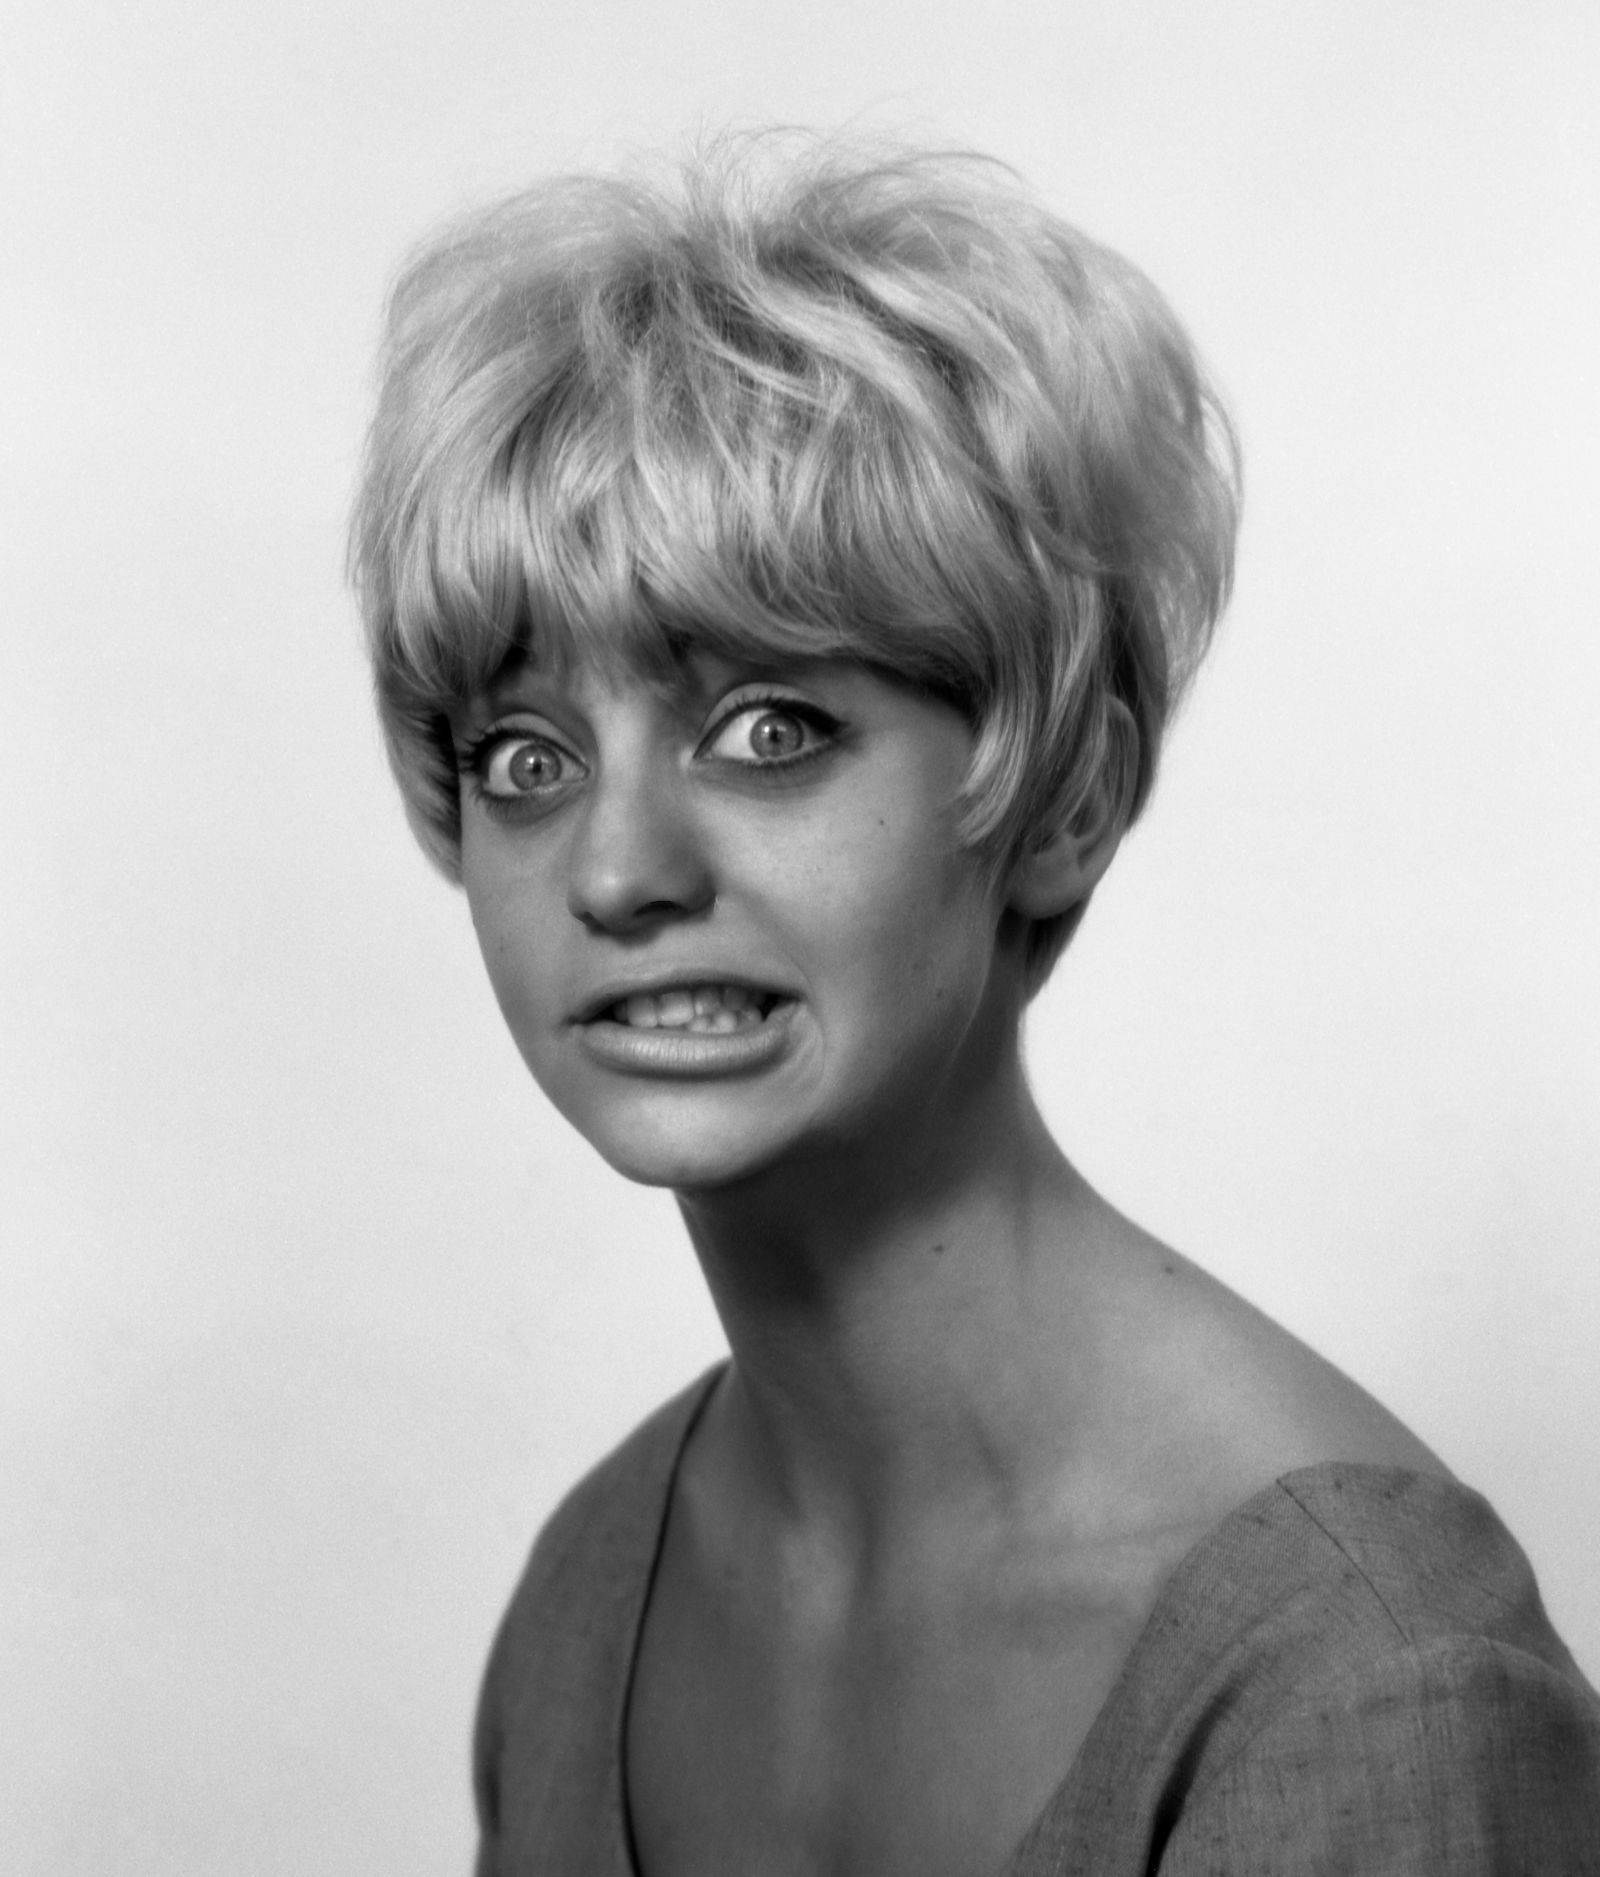 Rare Photos Of Goldie Hawn When She Was A Young Woman Goldie Hawn Young Goldie Hawn Celebrities Funny